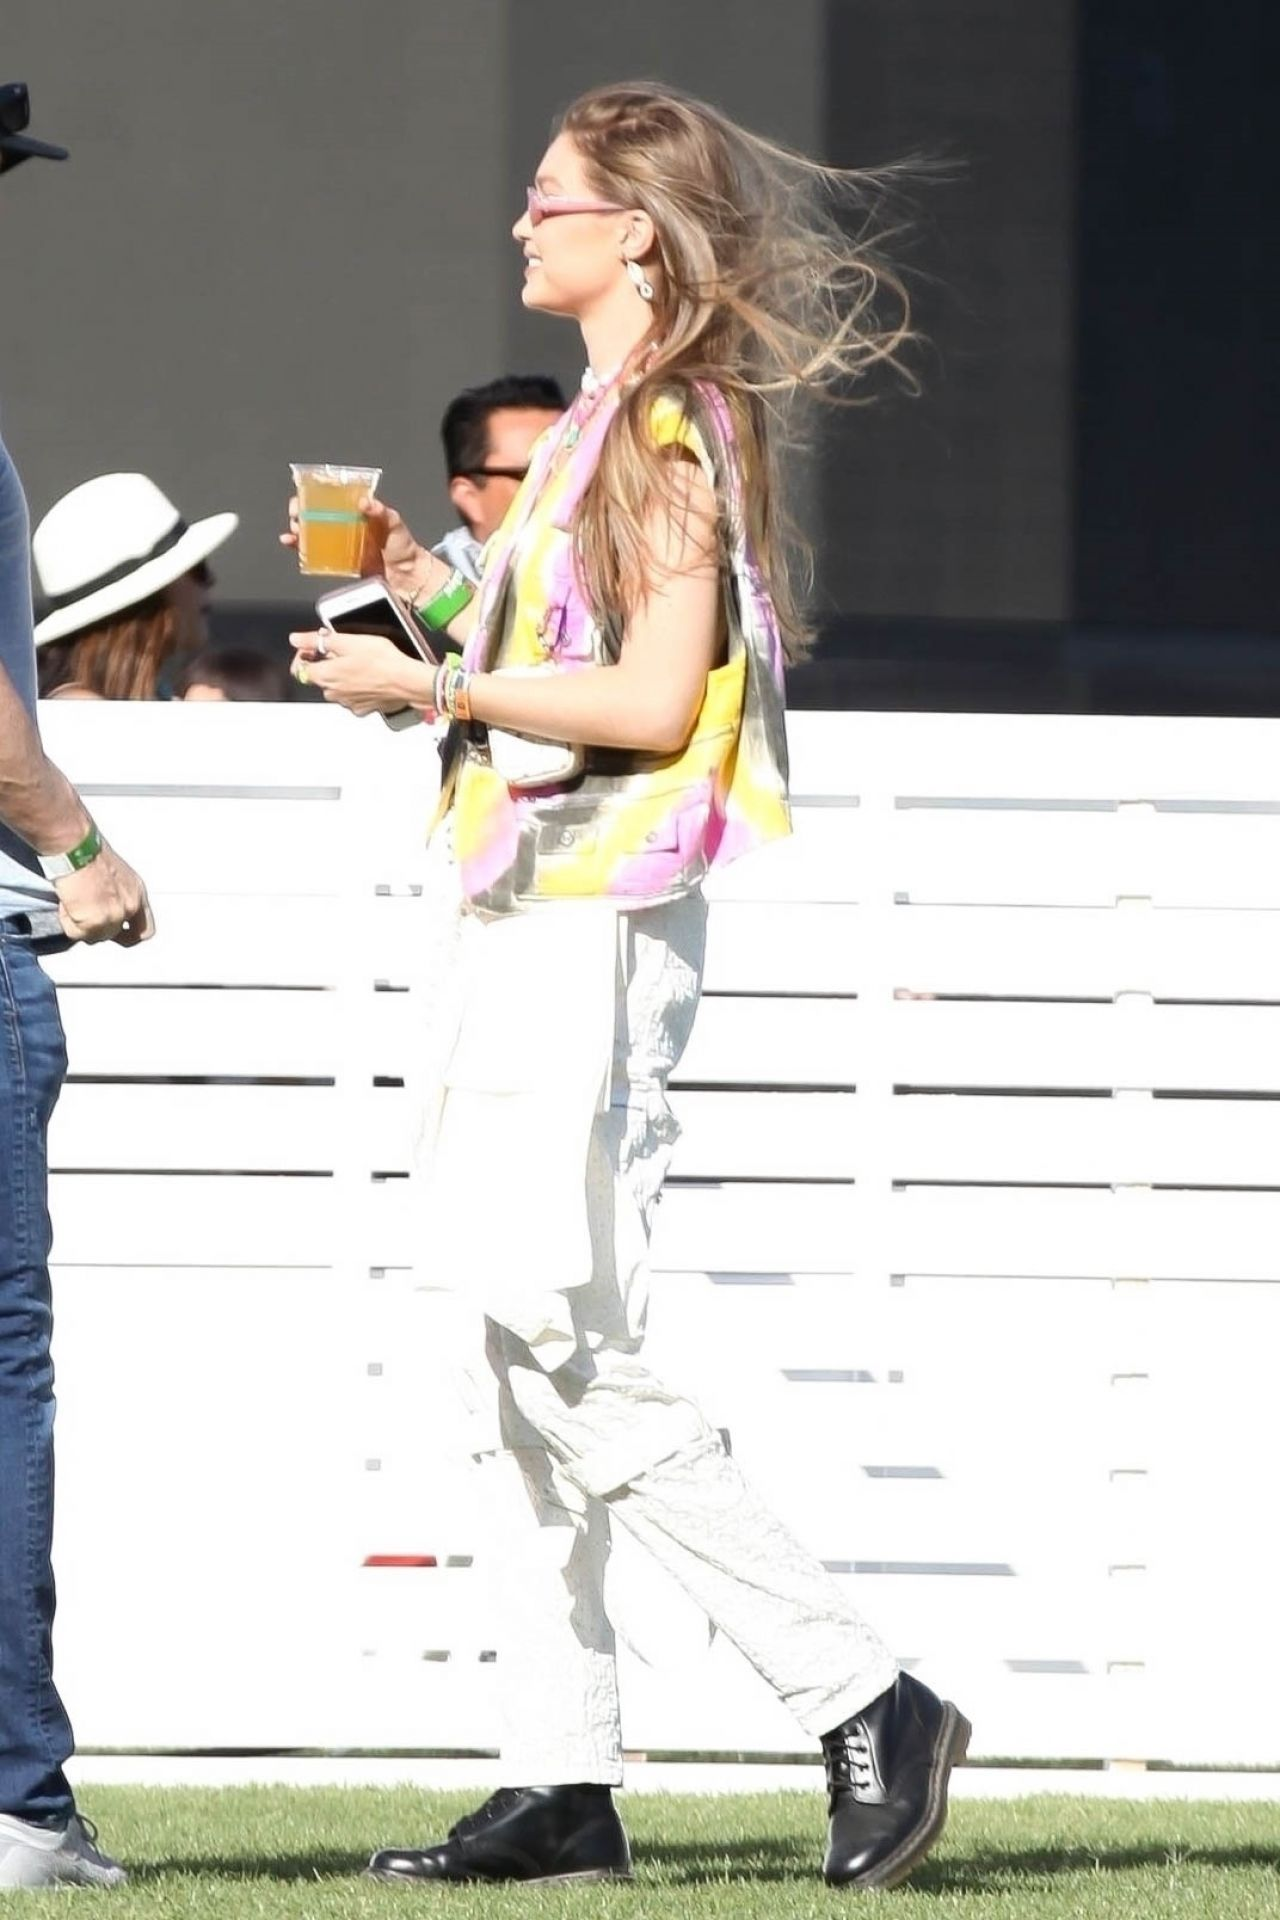 Gigi Hadid Coachella In Indio 04 12 2019